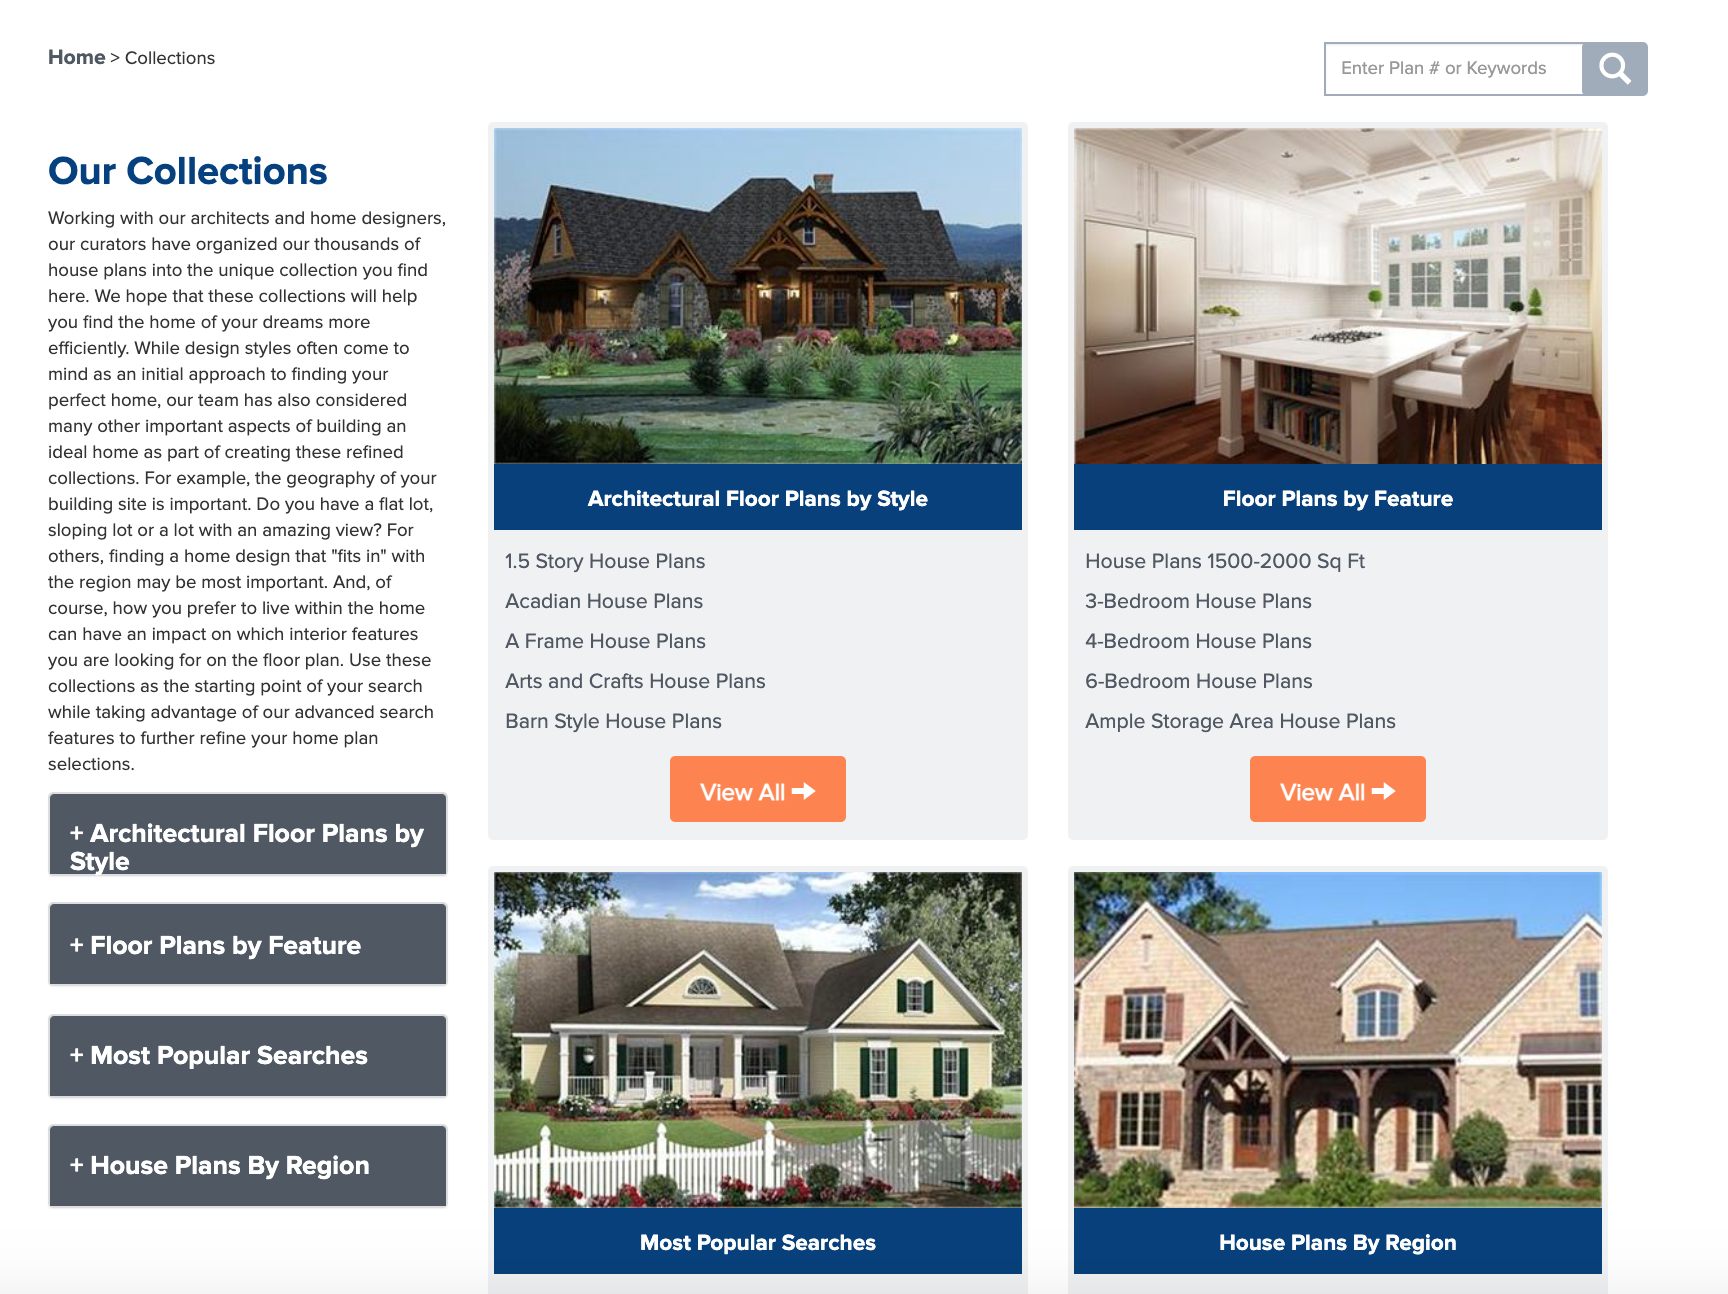 House Plan Collections landing page on The Plan Collection's website